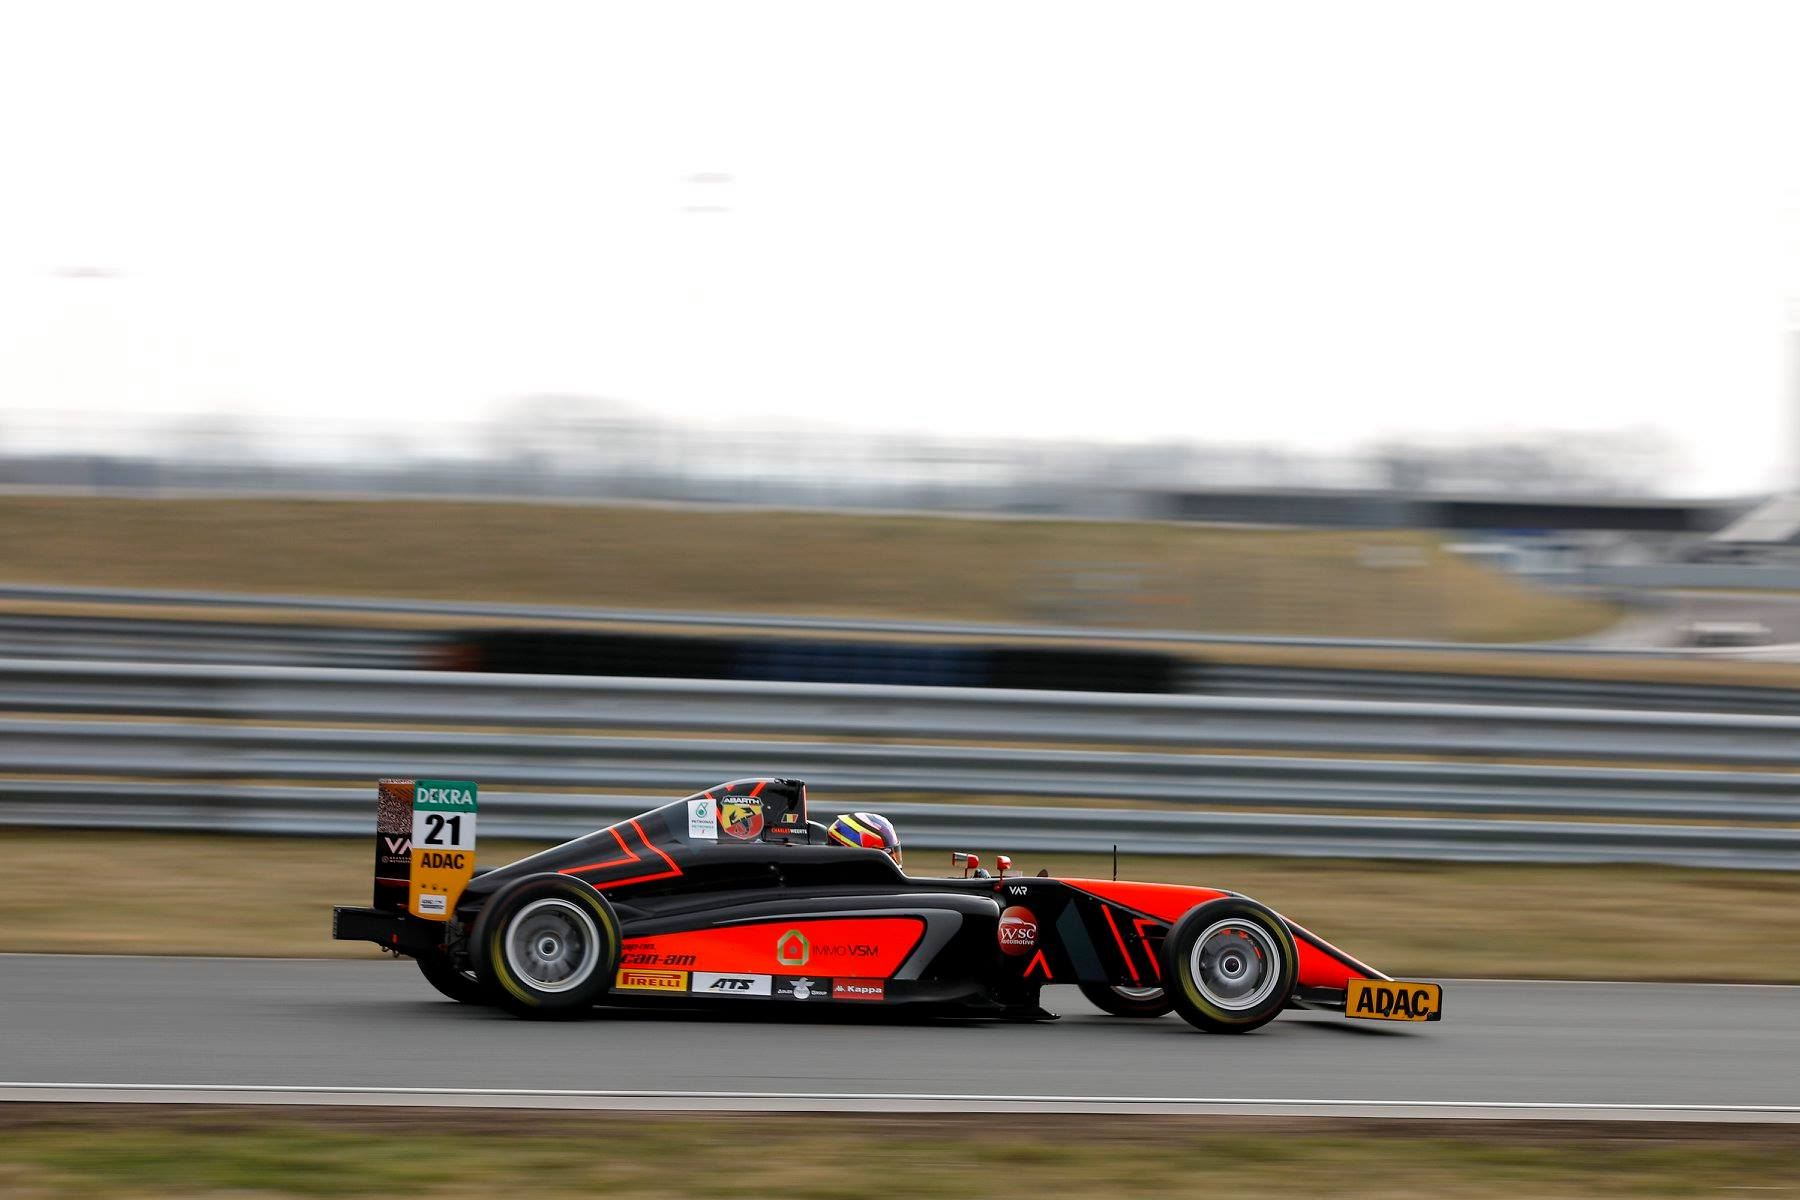 F4UAE GRADUATES BEGIN ADAC FORMEL 4 CHAMPIONSHIP SEASON IN GERMANY